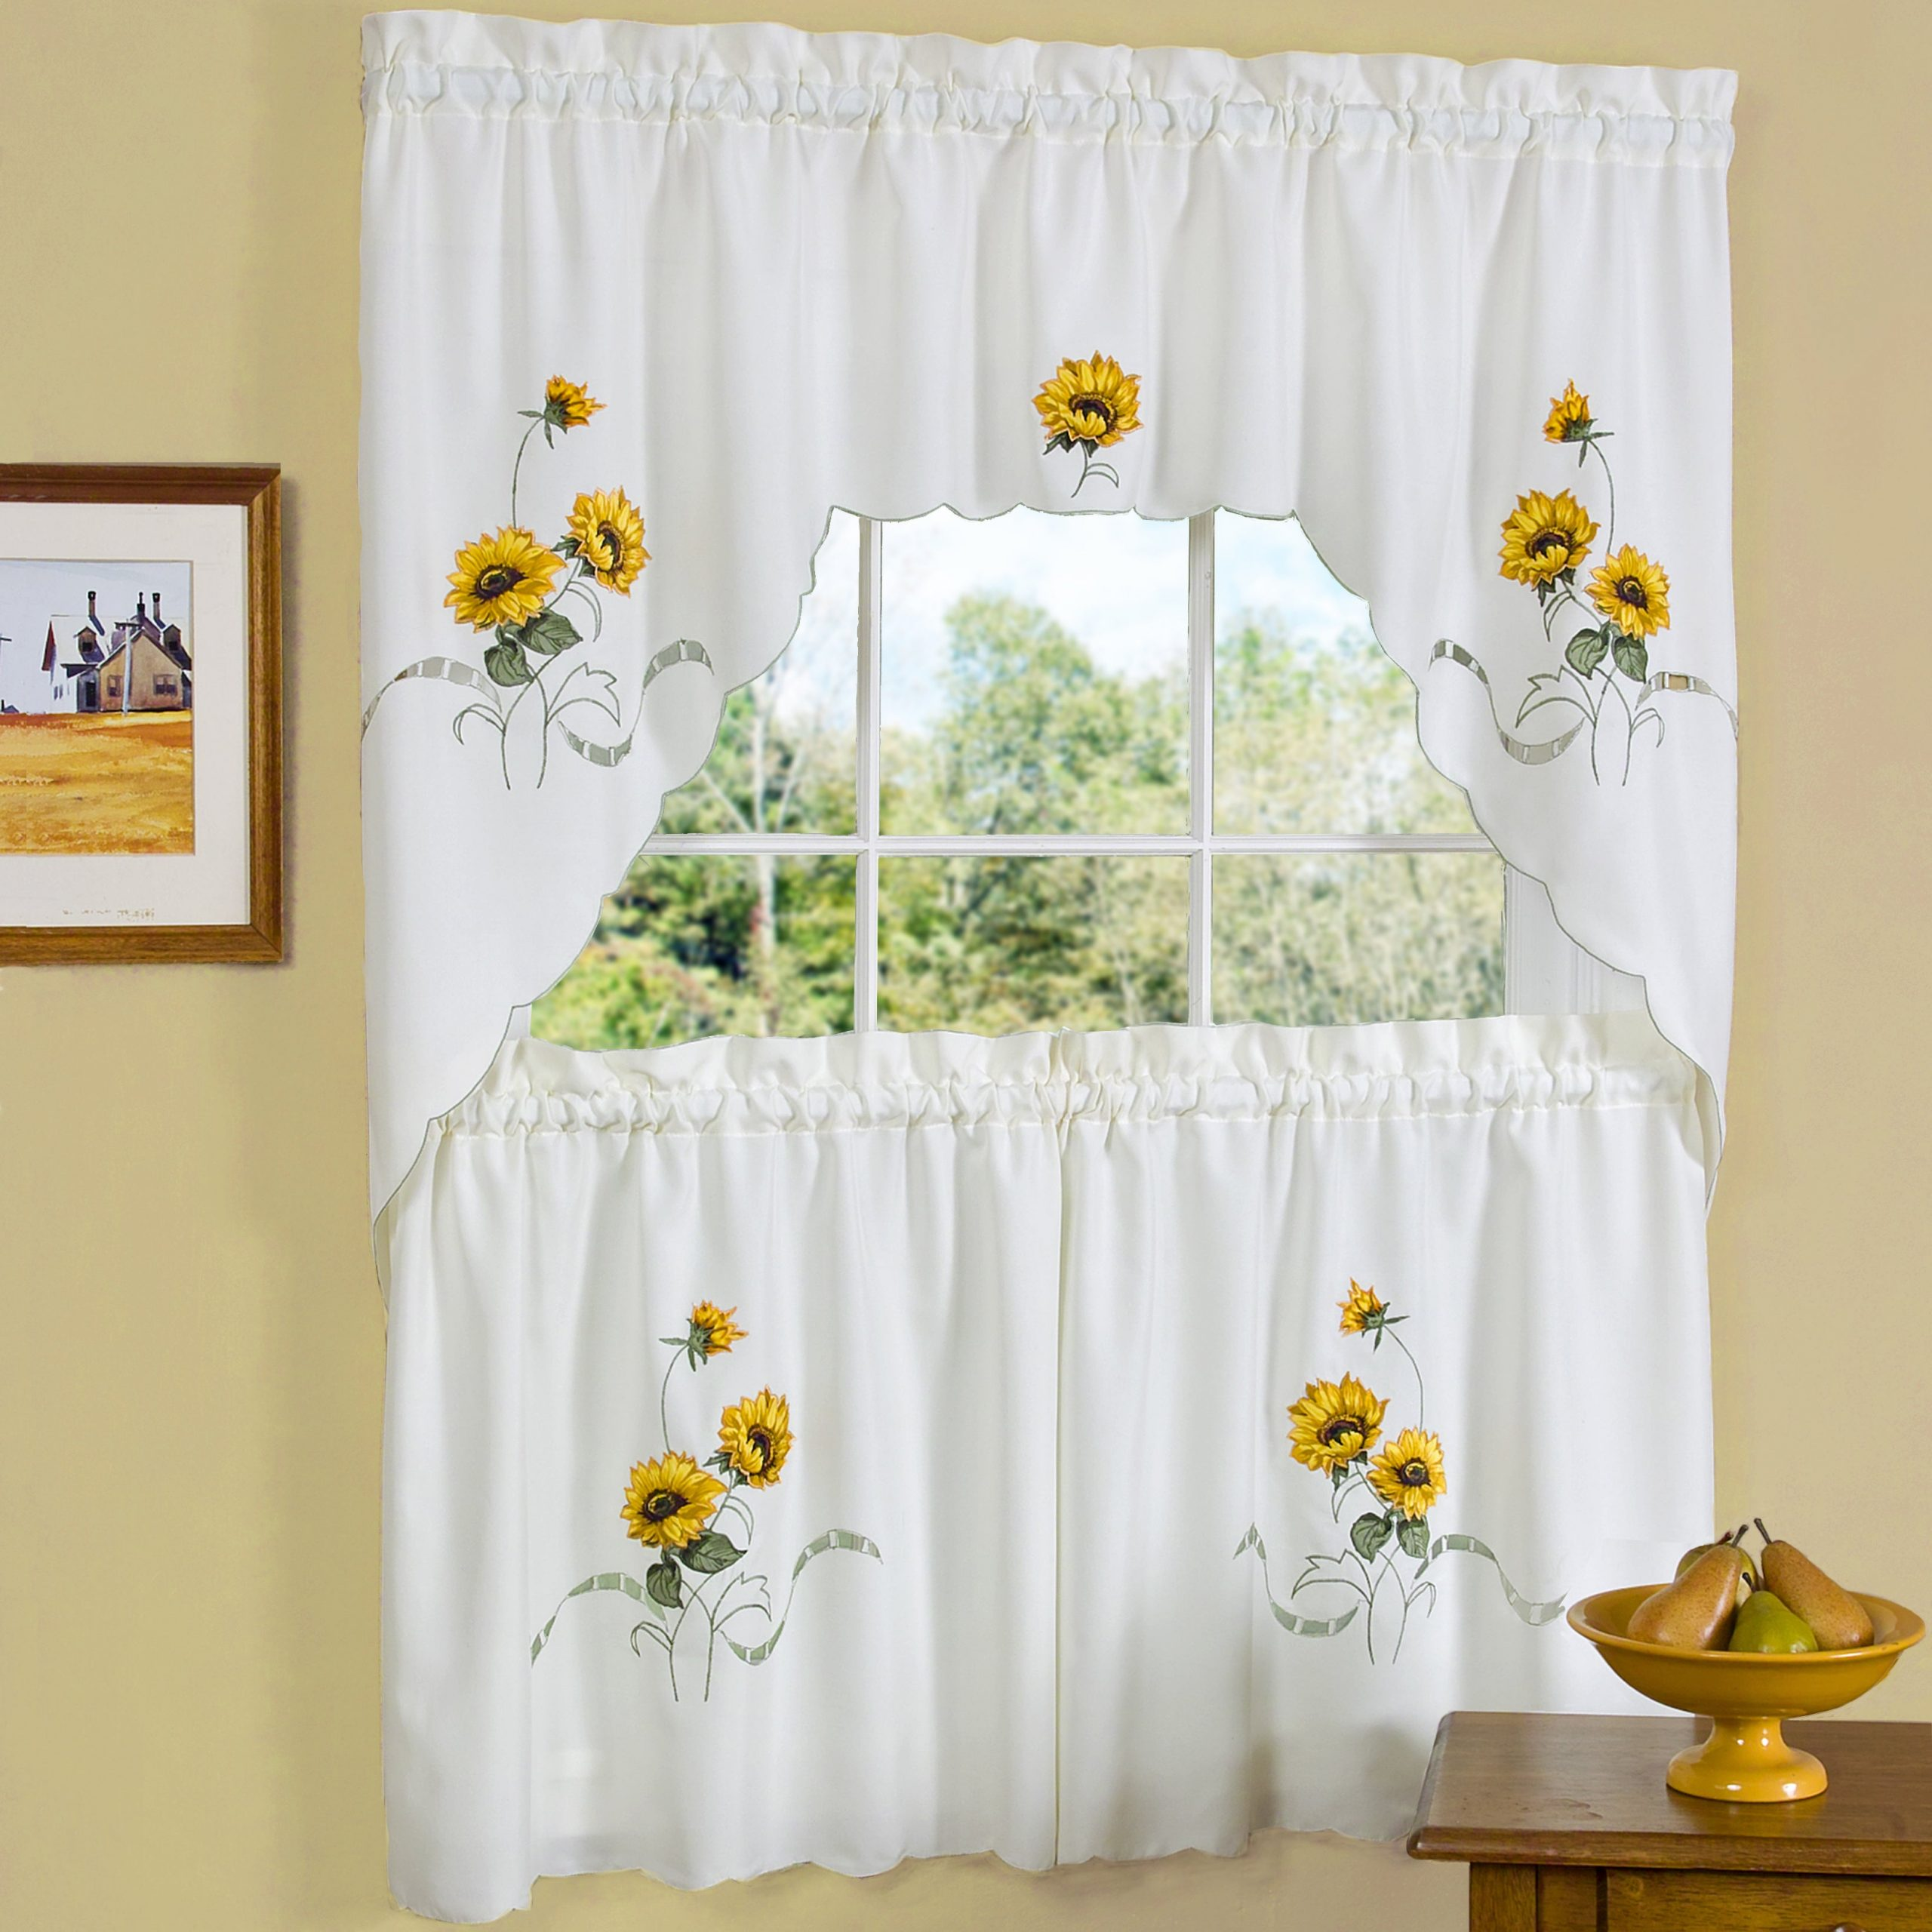 Traditional Two Piece Tailored Tier And Swag Window Curtains Set With Embroidered Yellow Sunflowers – 36 Inch In Embroidered Floral 5 Piece Kitchen Curtain Sets (View 4 of 20)